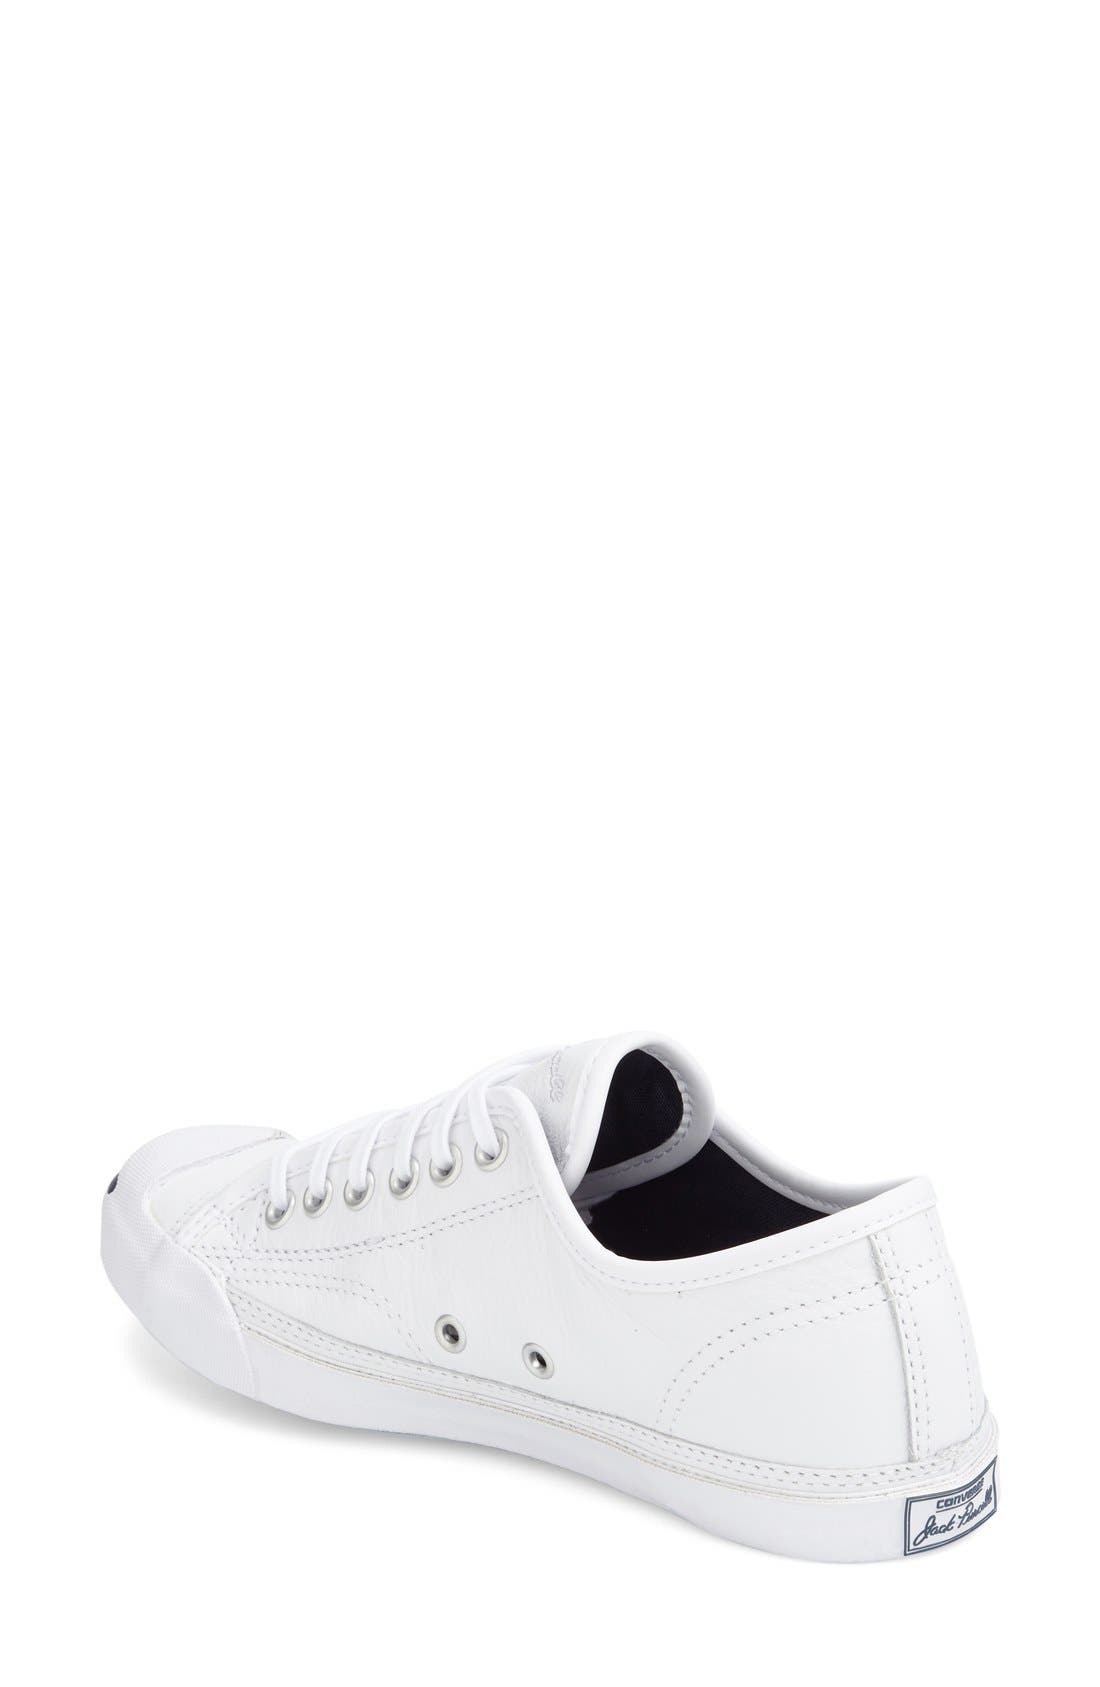 'Jack Purcell' Low Top Sneaker,                             Alternate thumbnail 2, color,                             100